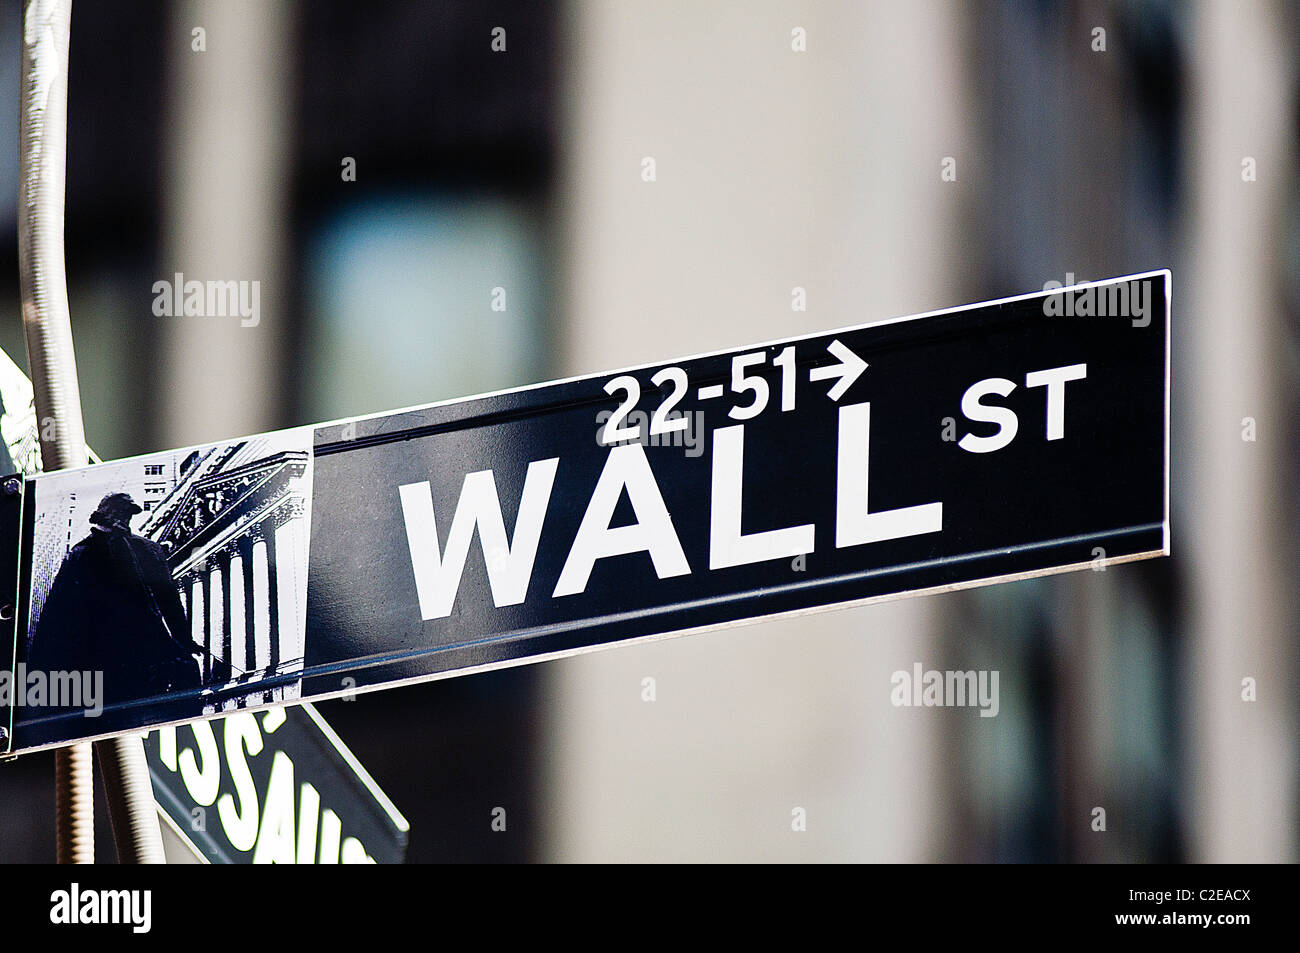 Wall Street road sing, Financial District, Lower Manhattan, New York City, USA - Stock Image